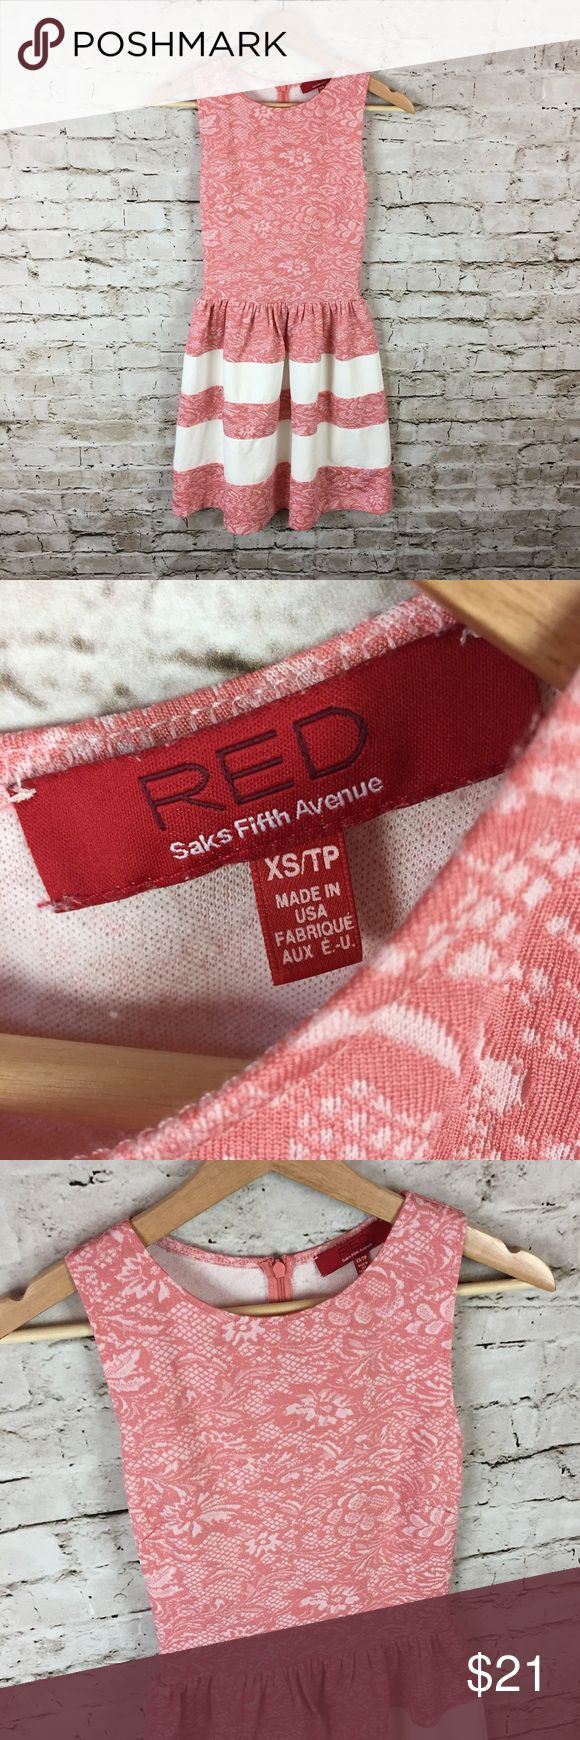 "Women's RED Saks Fifth Avenue Dress size XS Women's RED Saks Fifth Avenue Dress size XS.  Nice Sleeveless Dress made of Rayon with nice Stretch.  Blush Lace Bodice with Blush and White Striped bottom.  In gently used condition. Please see pictures for details.  Armpit to Armpit - 12.5"" Length - 32""  Thank you for shopping with us, we appreciate your business.  *All items are measured laying flat, please be sure to check sizing before purchasing. All brands do fit differently and all sales…"